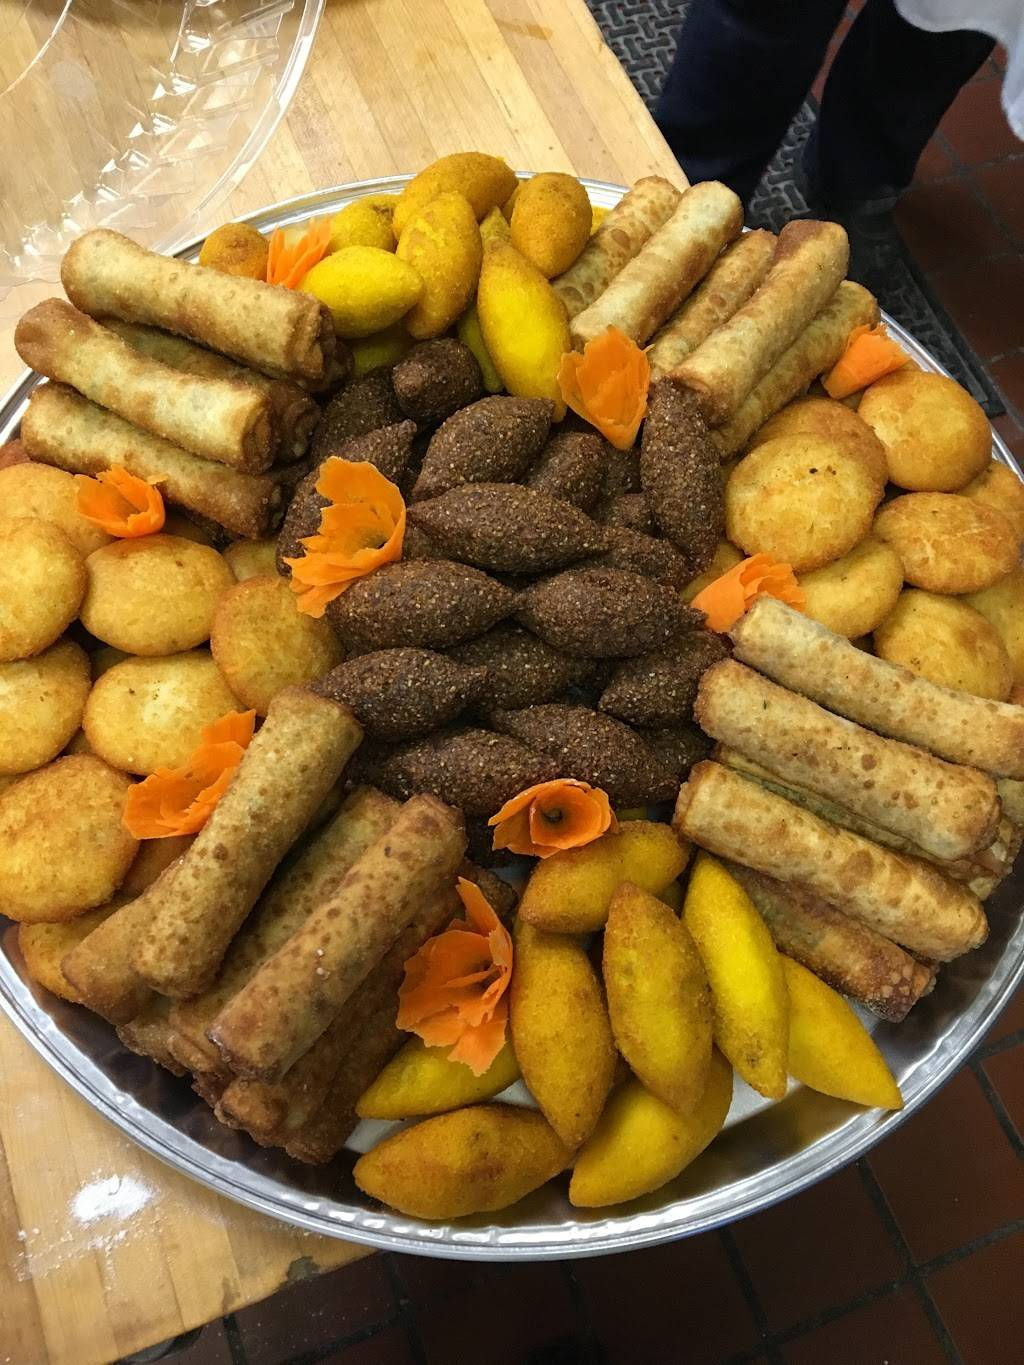 Gold N Oven Bakery   bakery   4104 15 Mile Rd, Sterling Heights, MI 48310, USA   5869797300 OR +1 586-979-7300